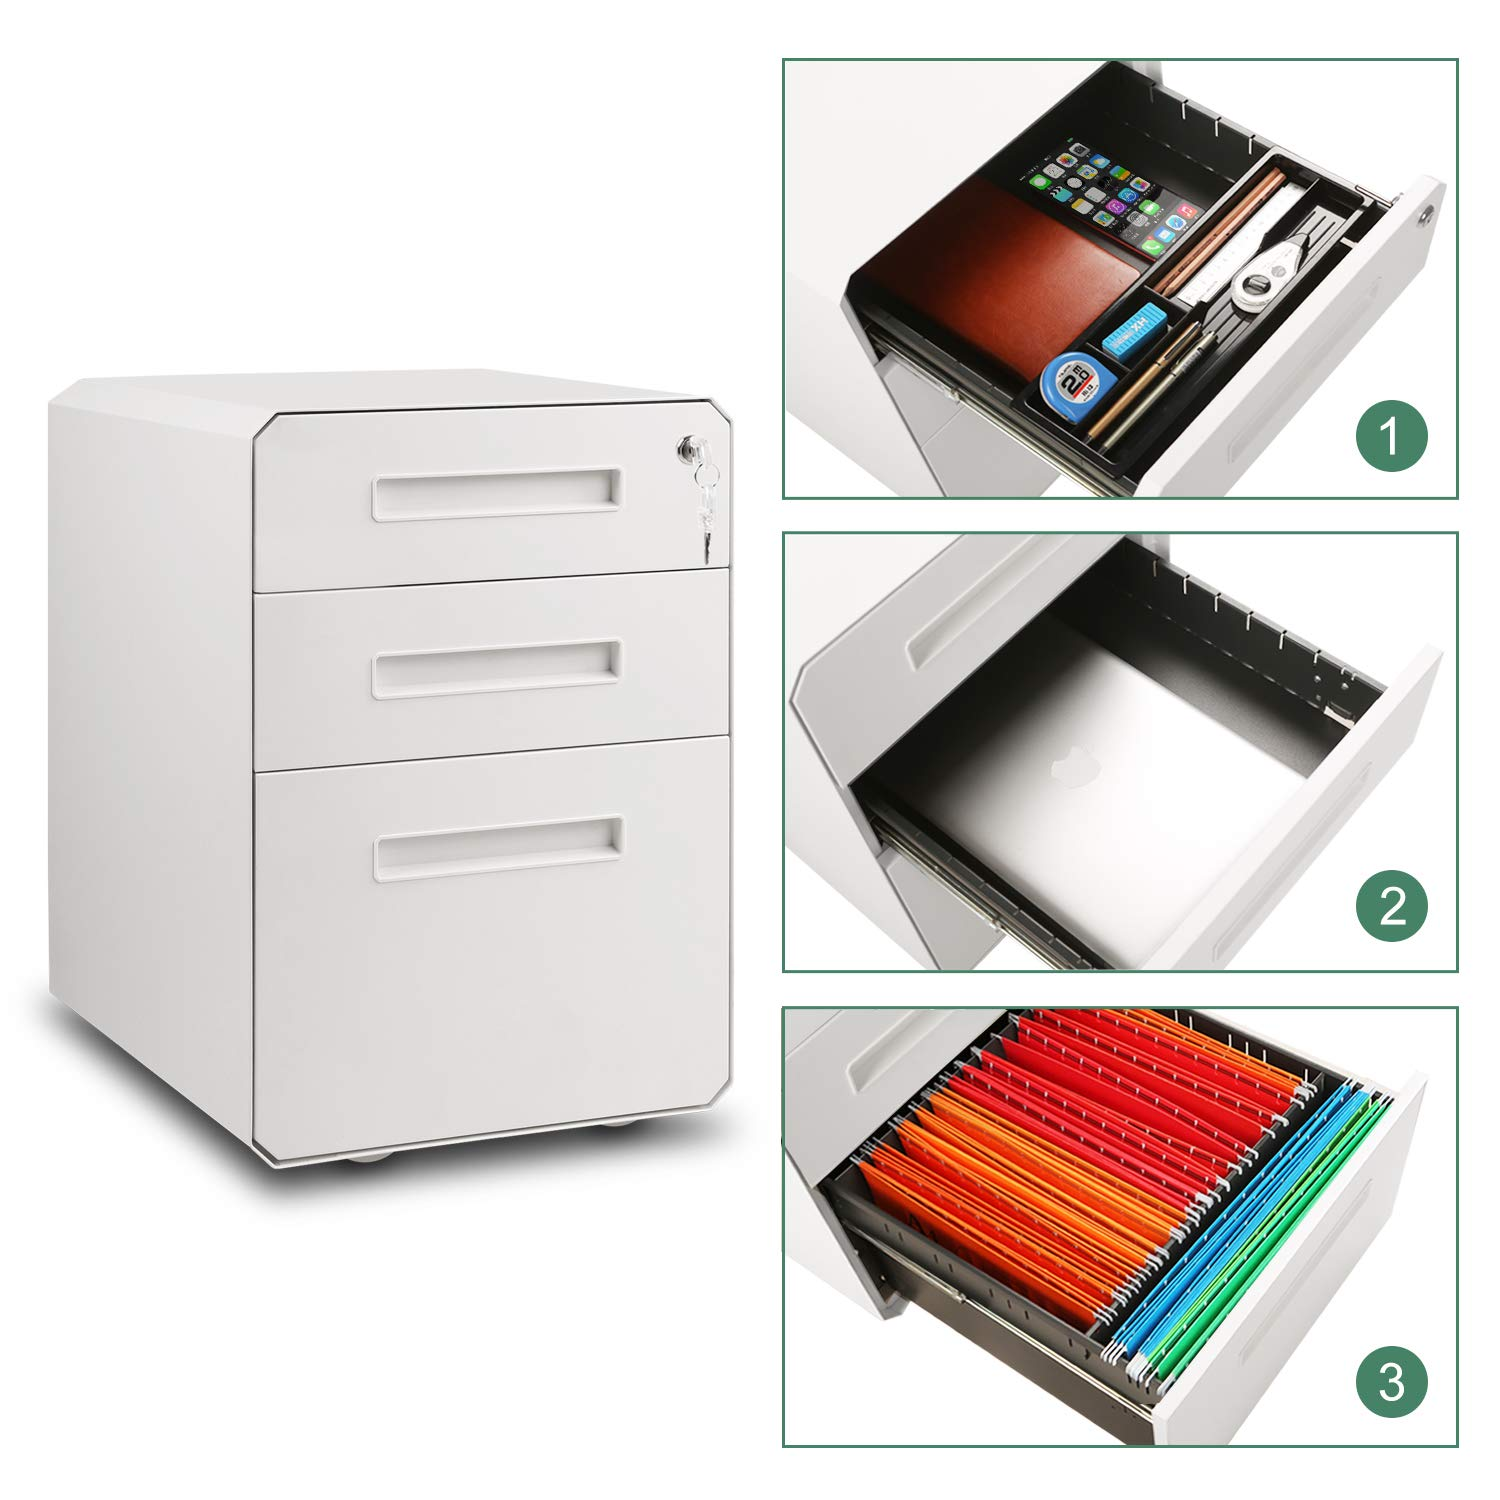 M&W 3 Drawer Mobile File Cabinet, Metal Locking Letter Filing Cabinet by M/W M & W (Image #3)